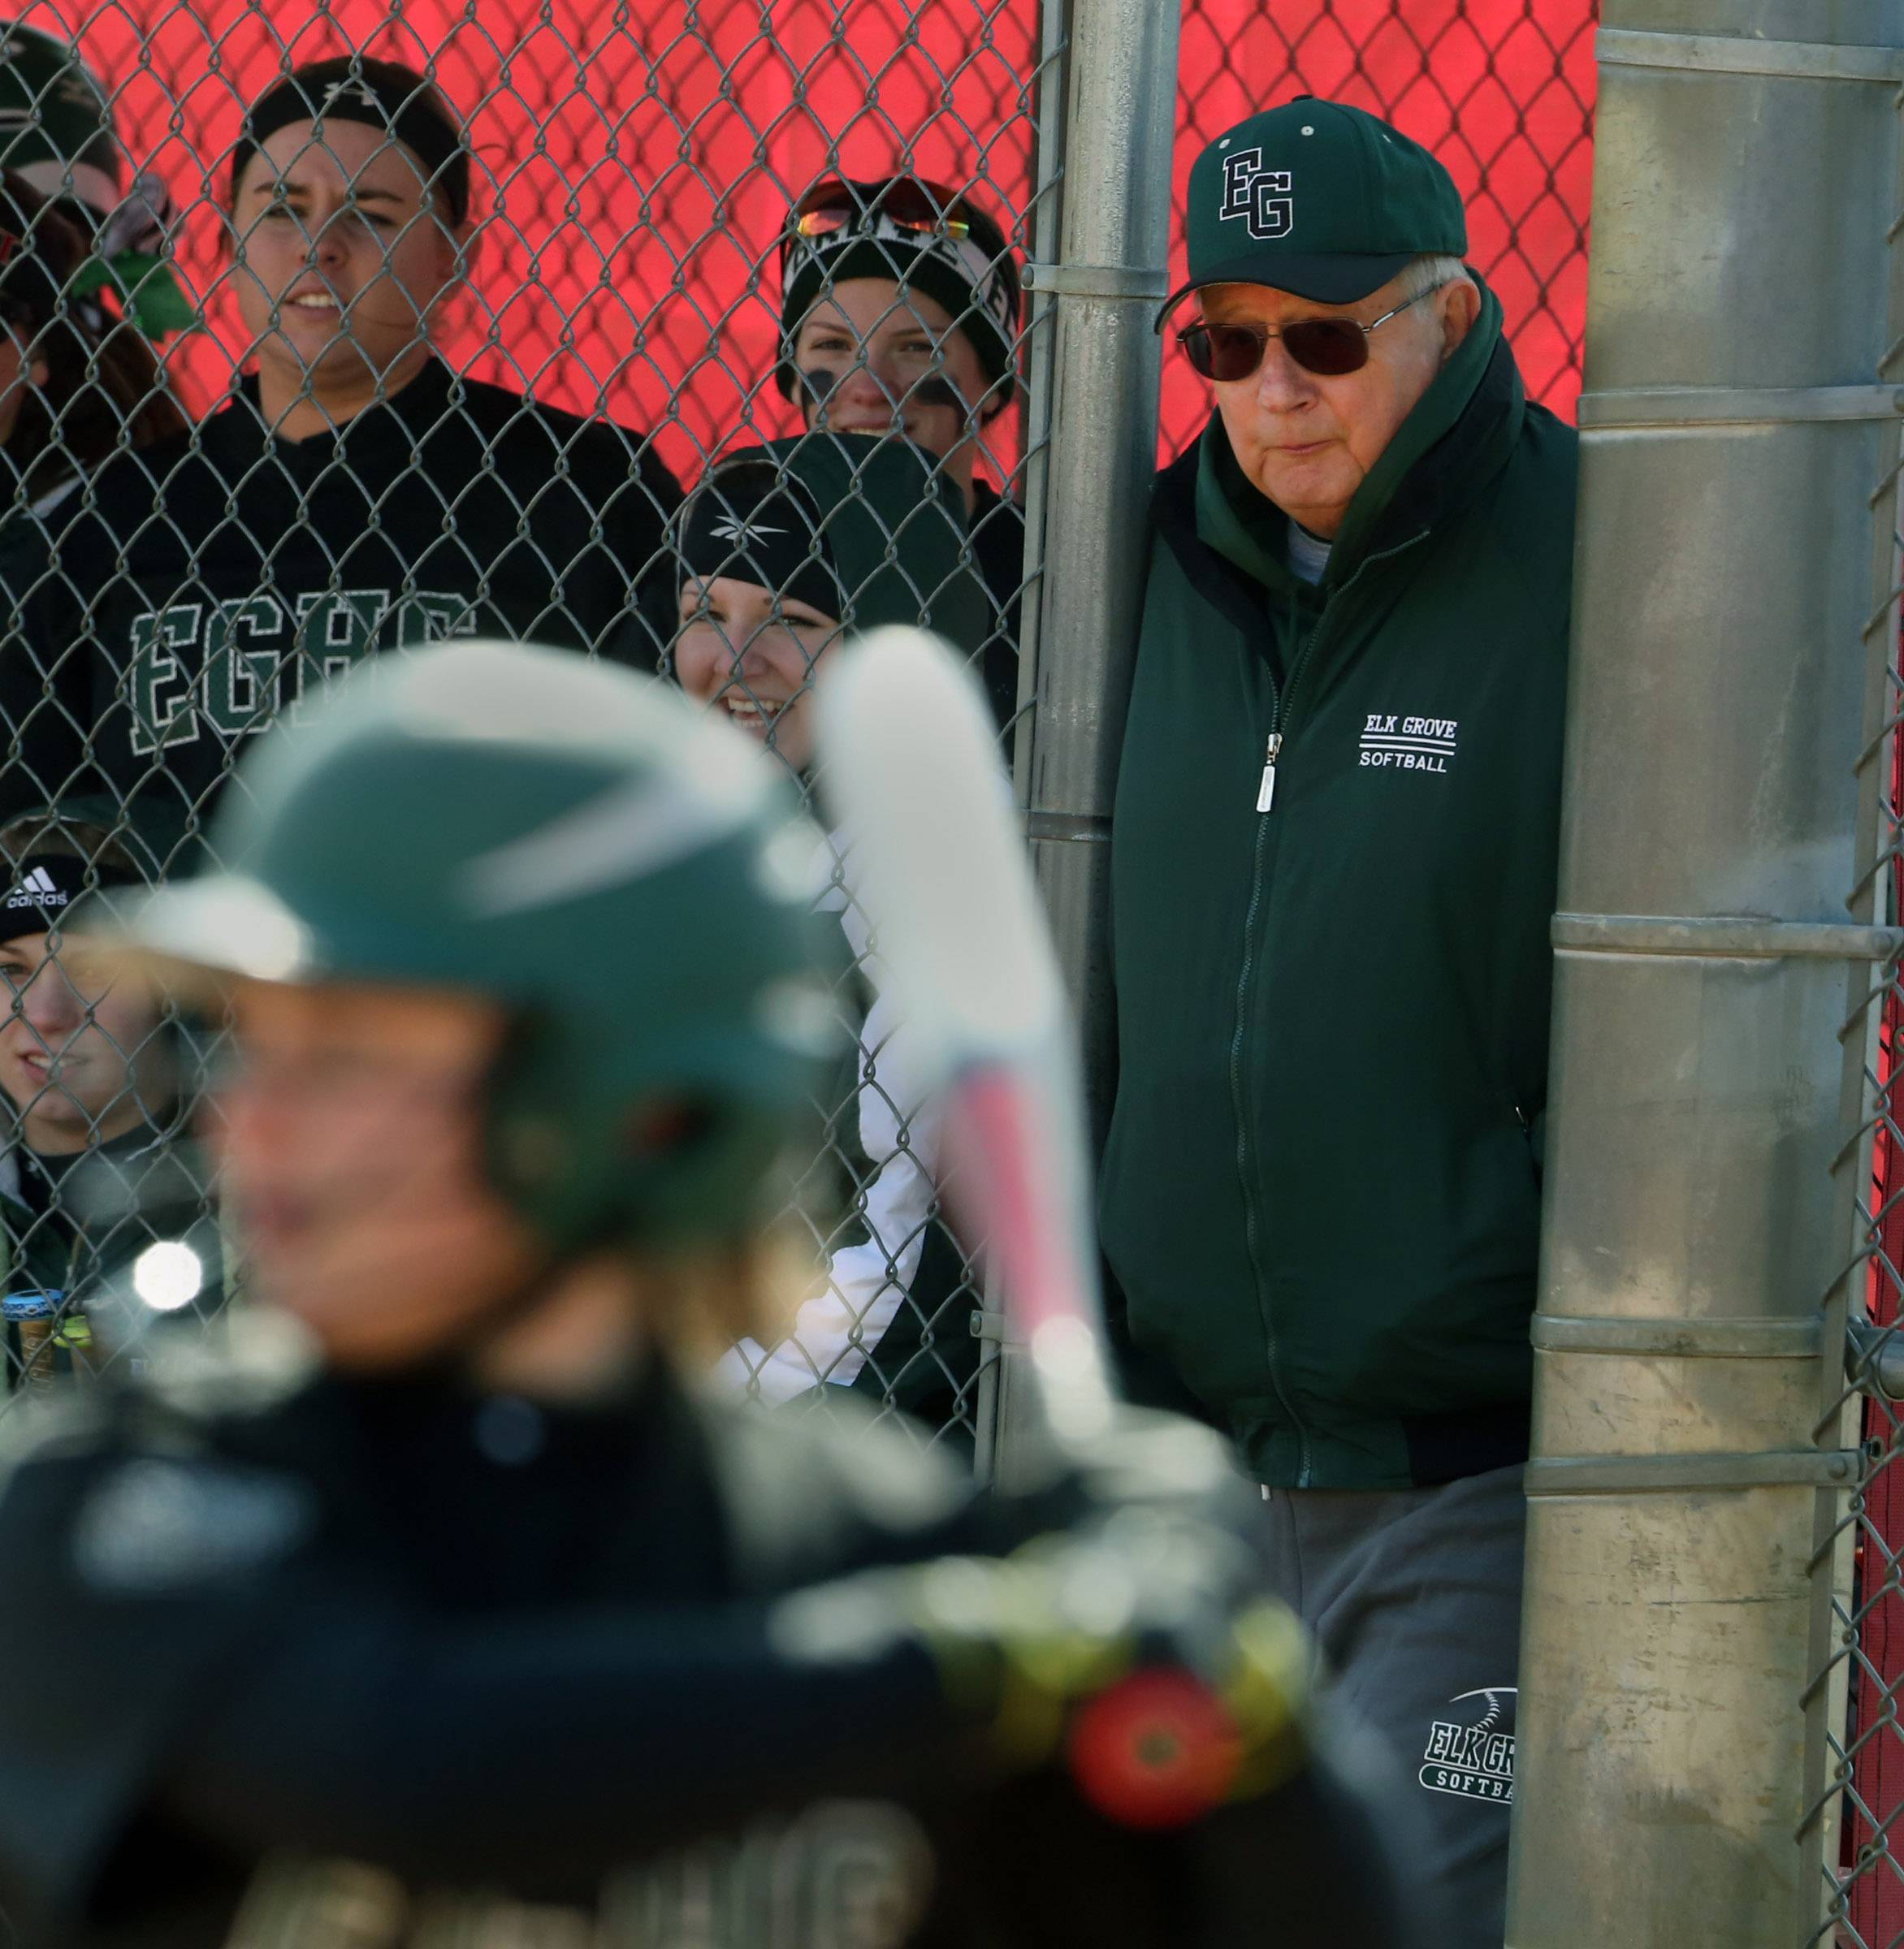 Elk Grove softball coach Ken Grams as the team plays against Mundelein at the Fields of Dreams on Saturday in Barrington.